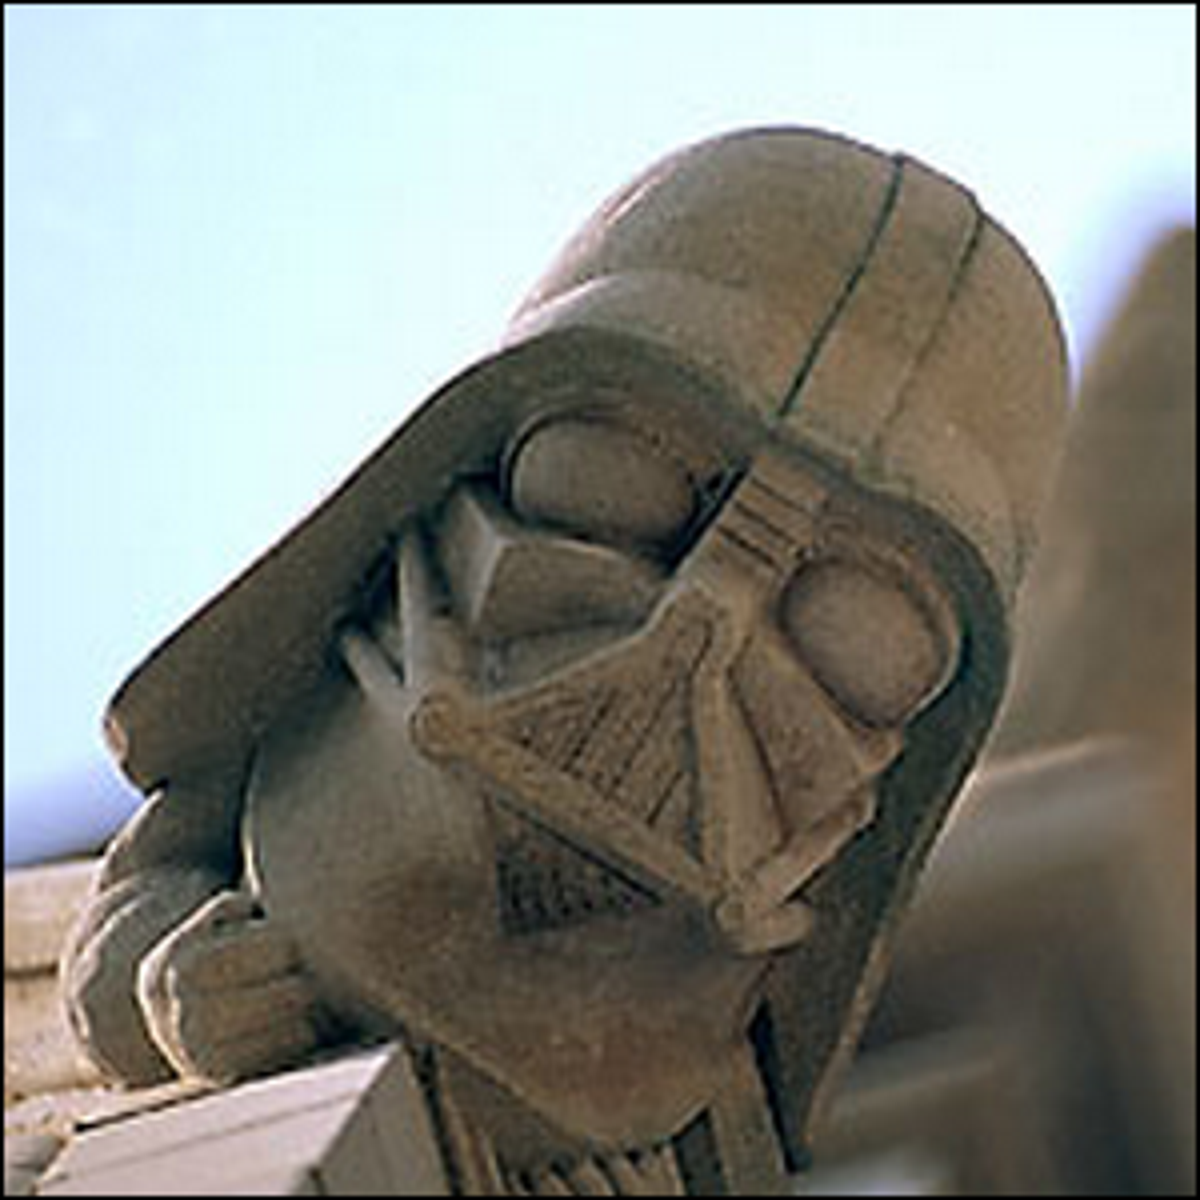 A photo depicting the Darth Vader grotesque.